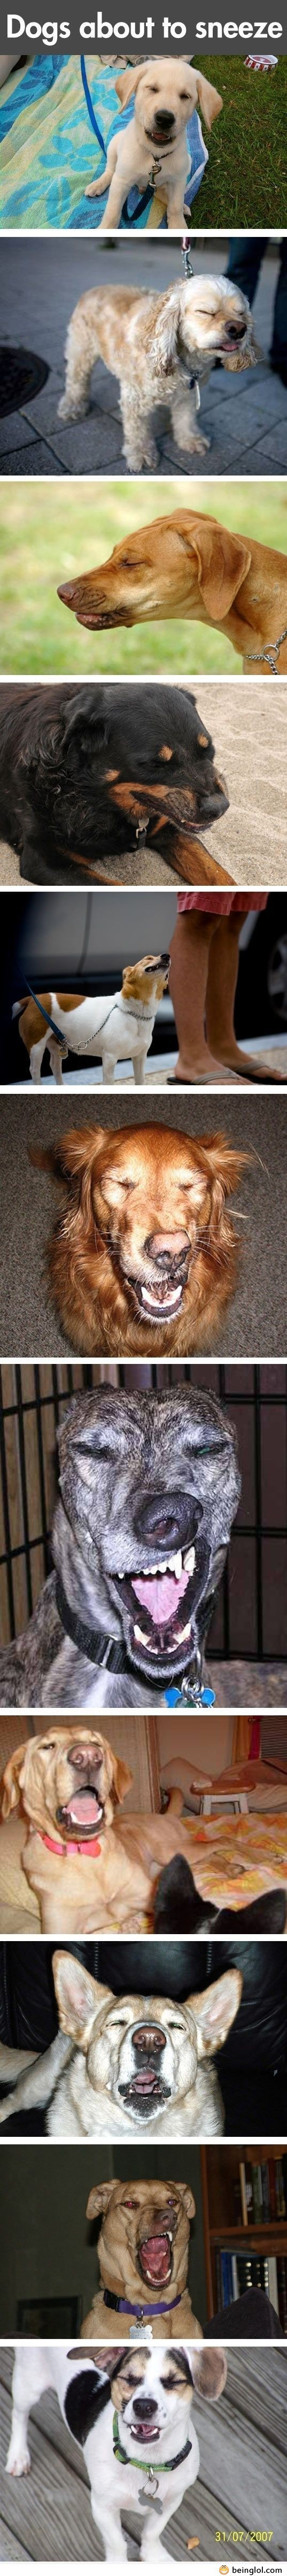 Funny Dogs About to Sneeze